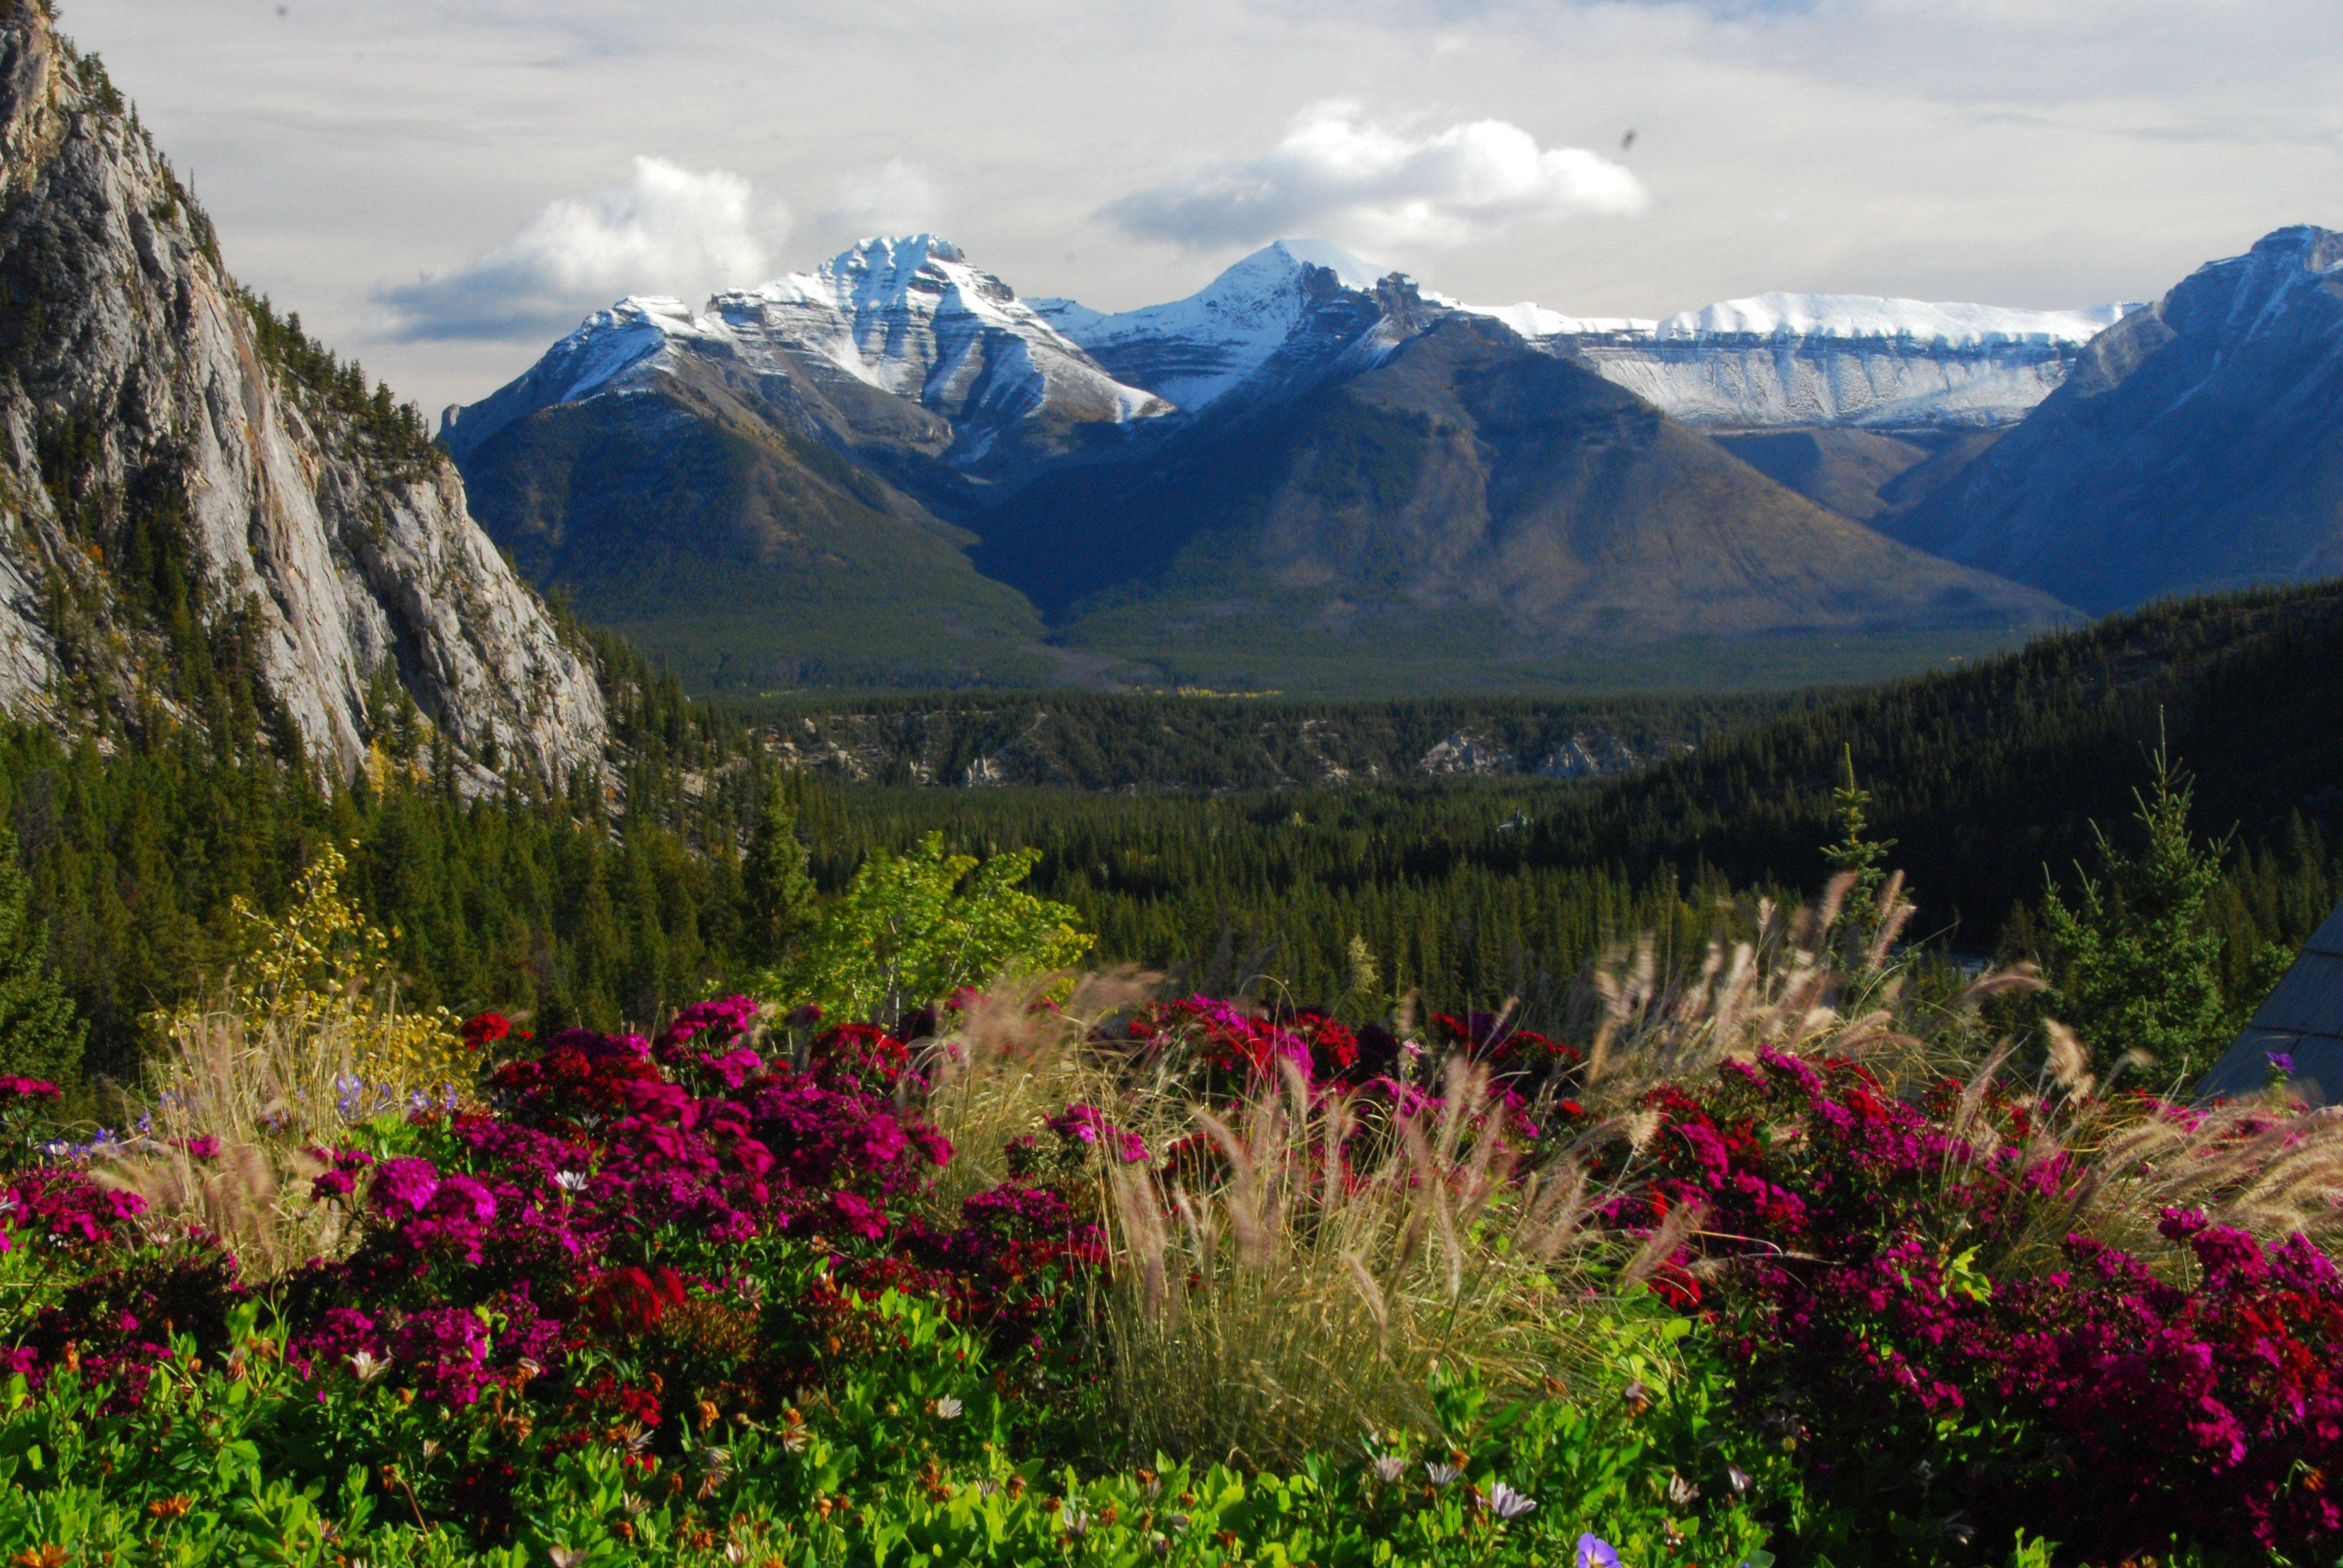 Flowers are in full bloom against the snow covered mountains in Canada.